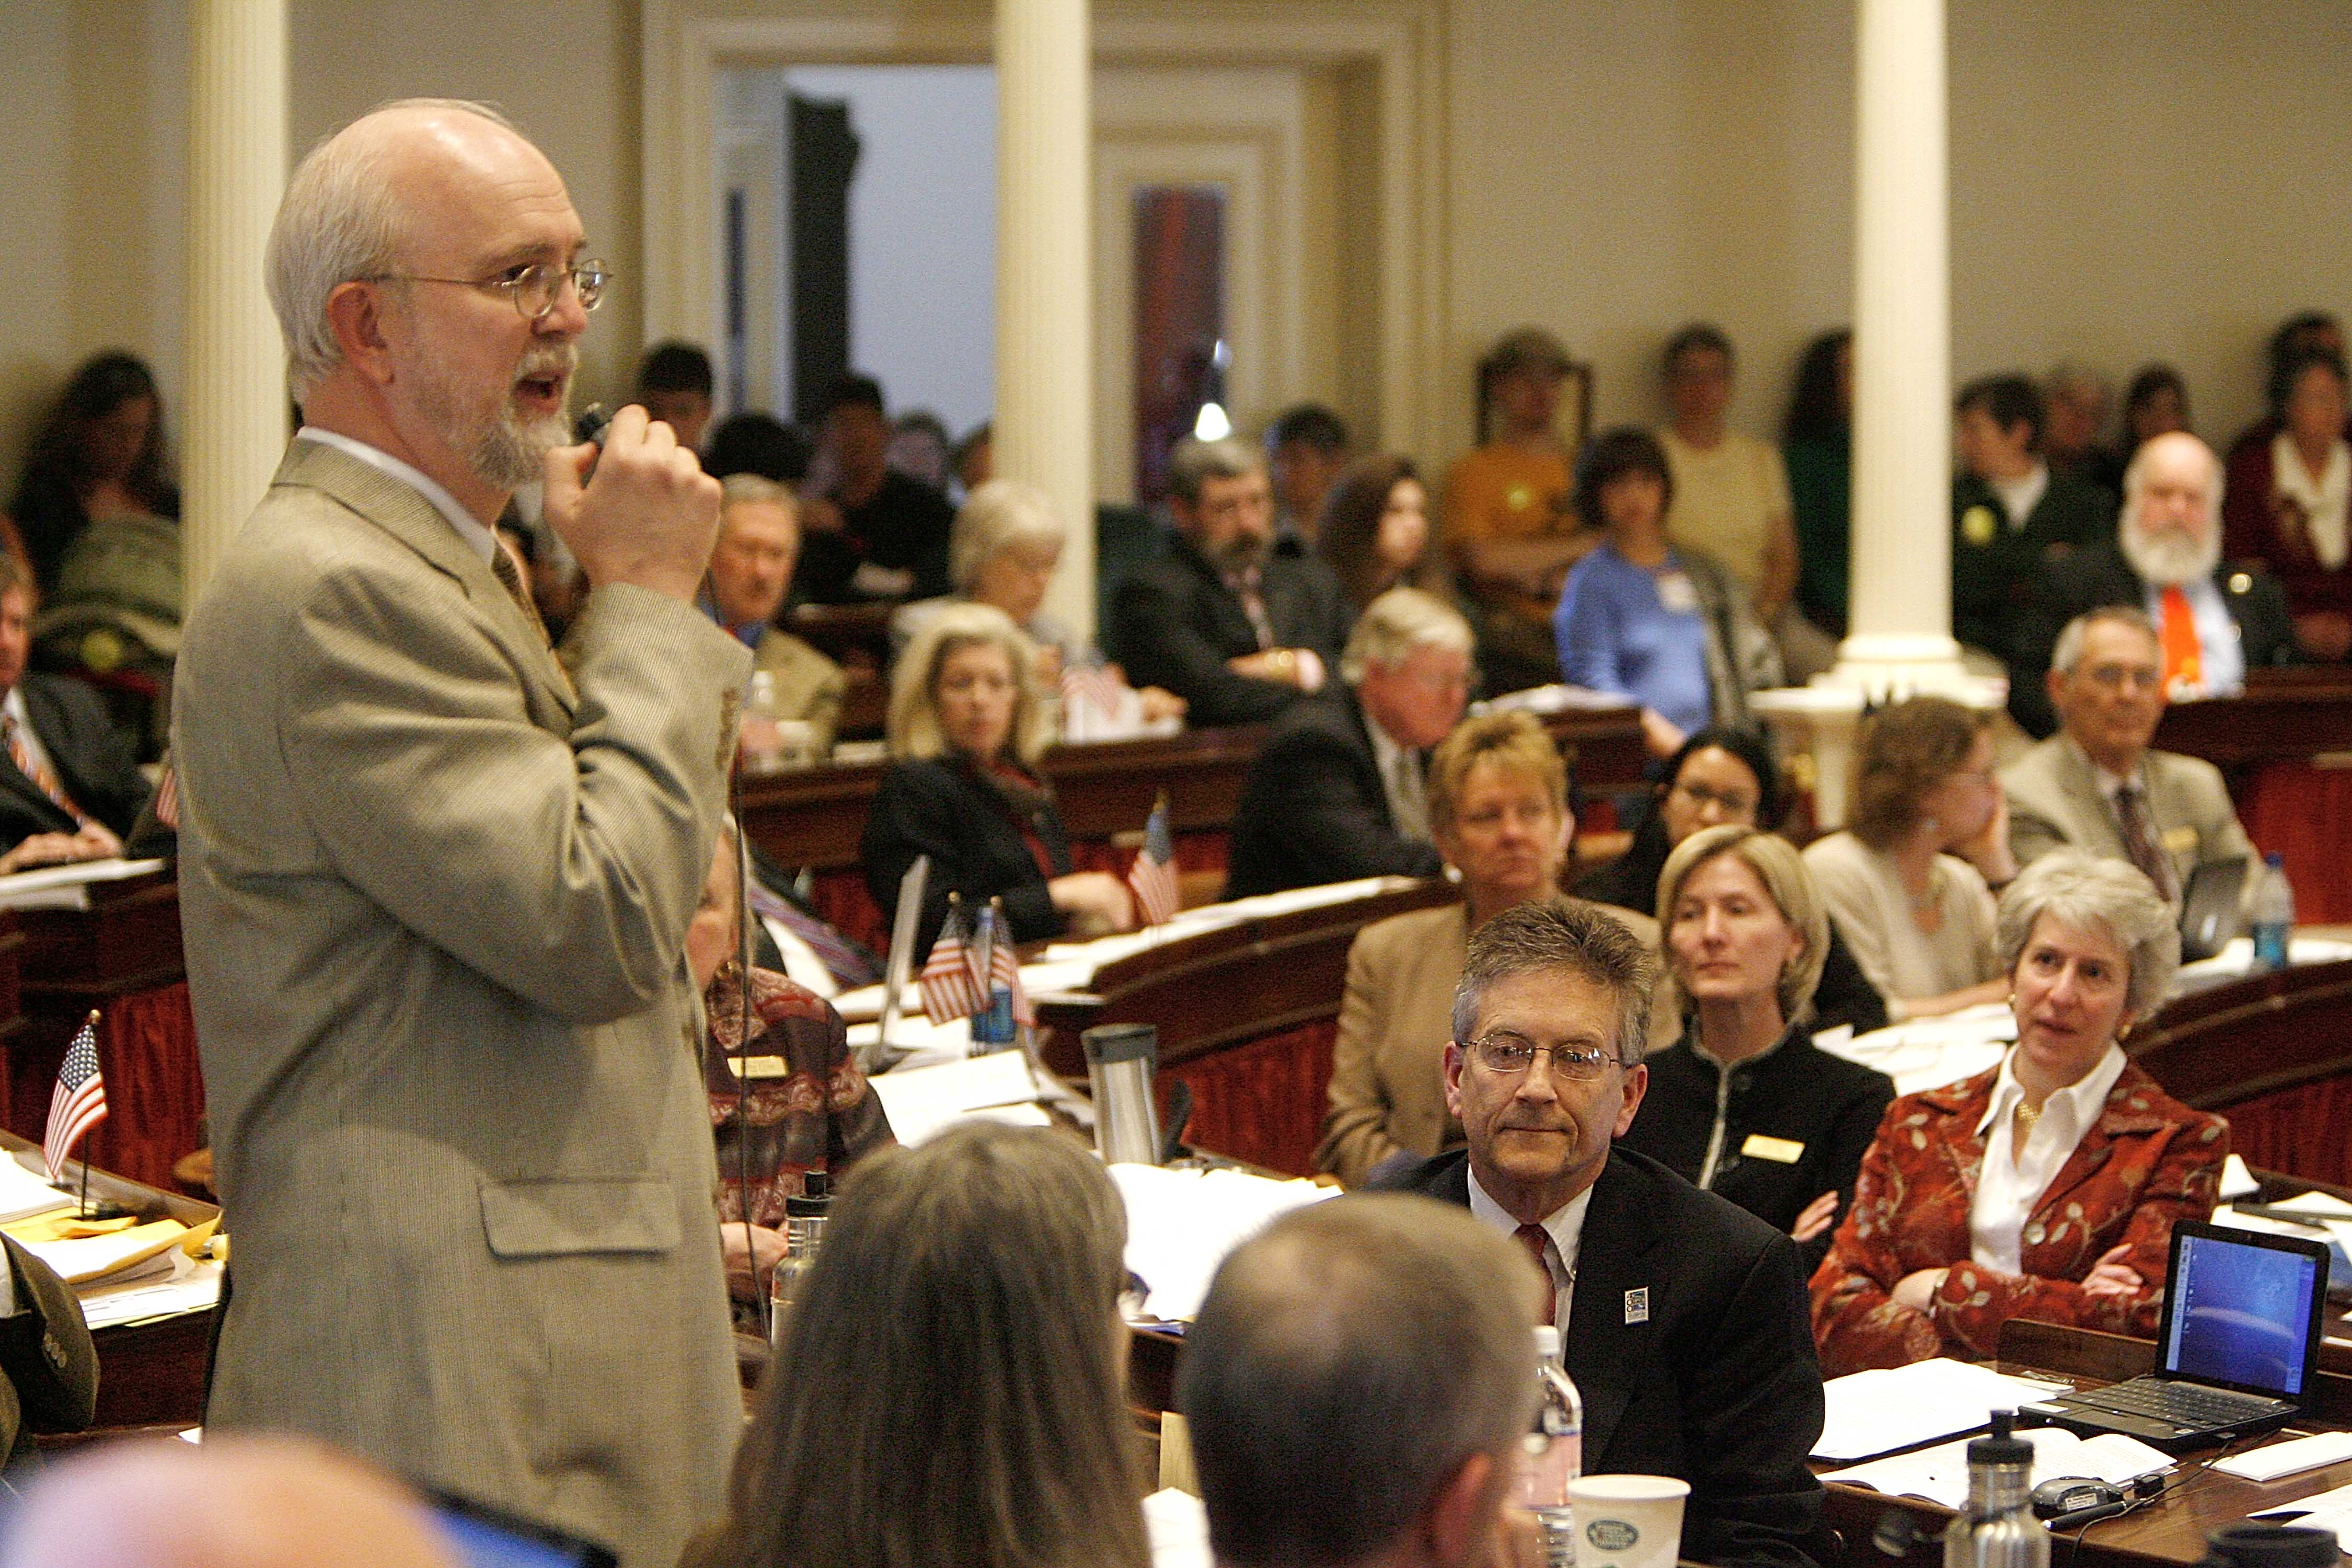 Rep. Bill Lippert opens a debate on marriage equality legislation in the Vermont House in April 2009. AP photo